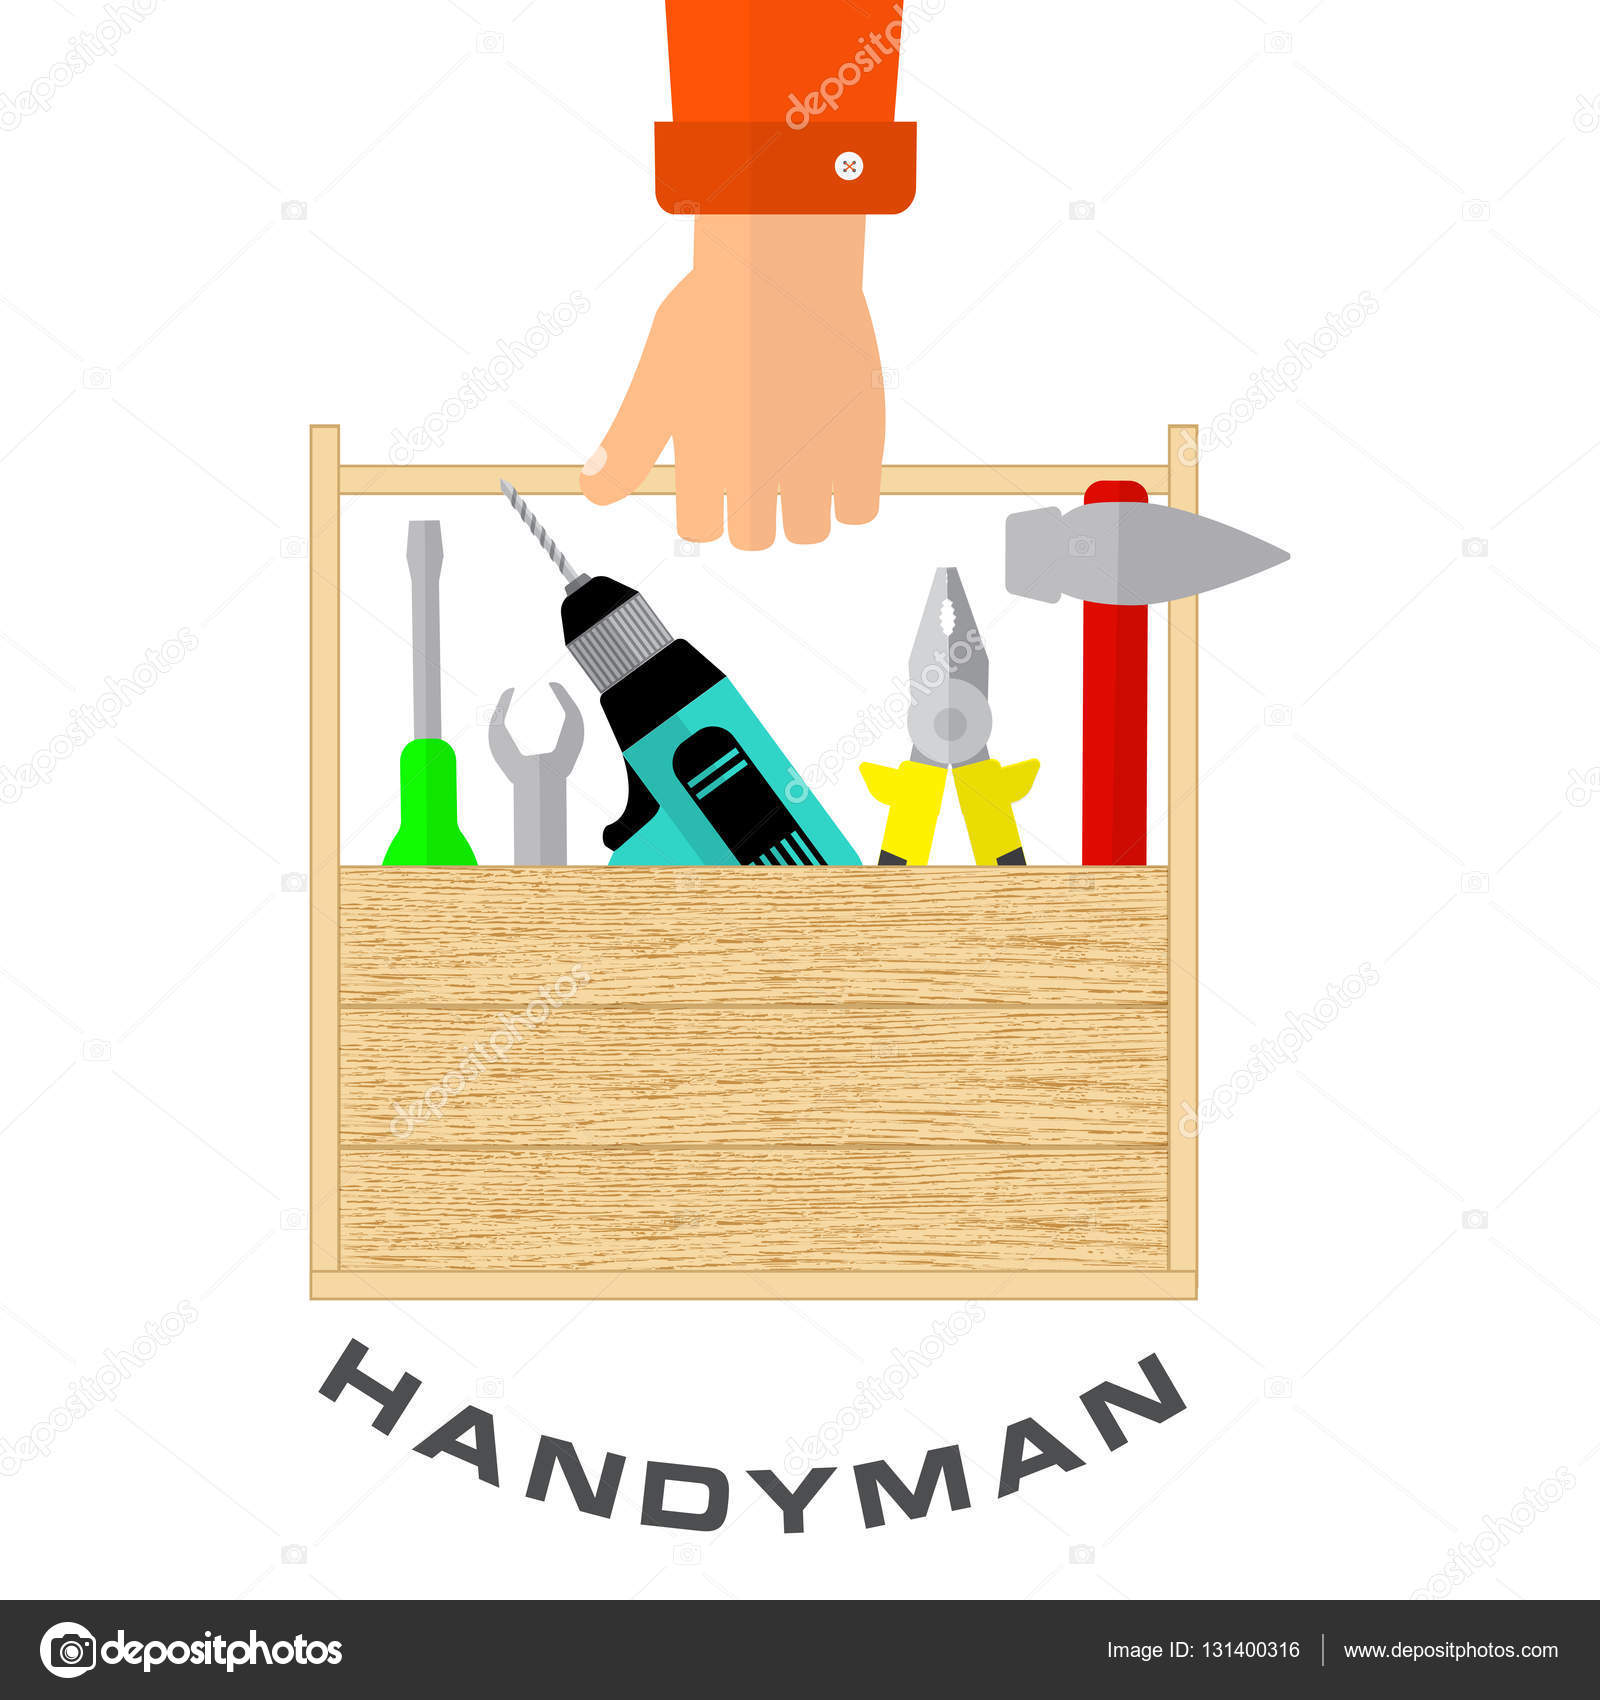 Home remodeling logo remodeling logo clipart - Box Of Tools In Hand Of Handyman House Remodel Tools Logo Home Repair Service Flat Style Tools For Building Remodel And Repair Vector By Karinanh